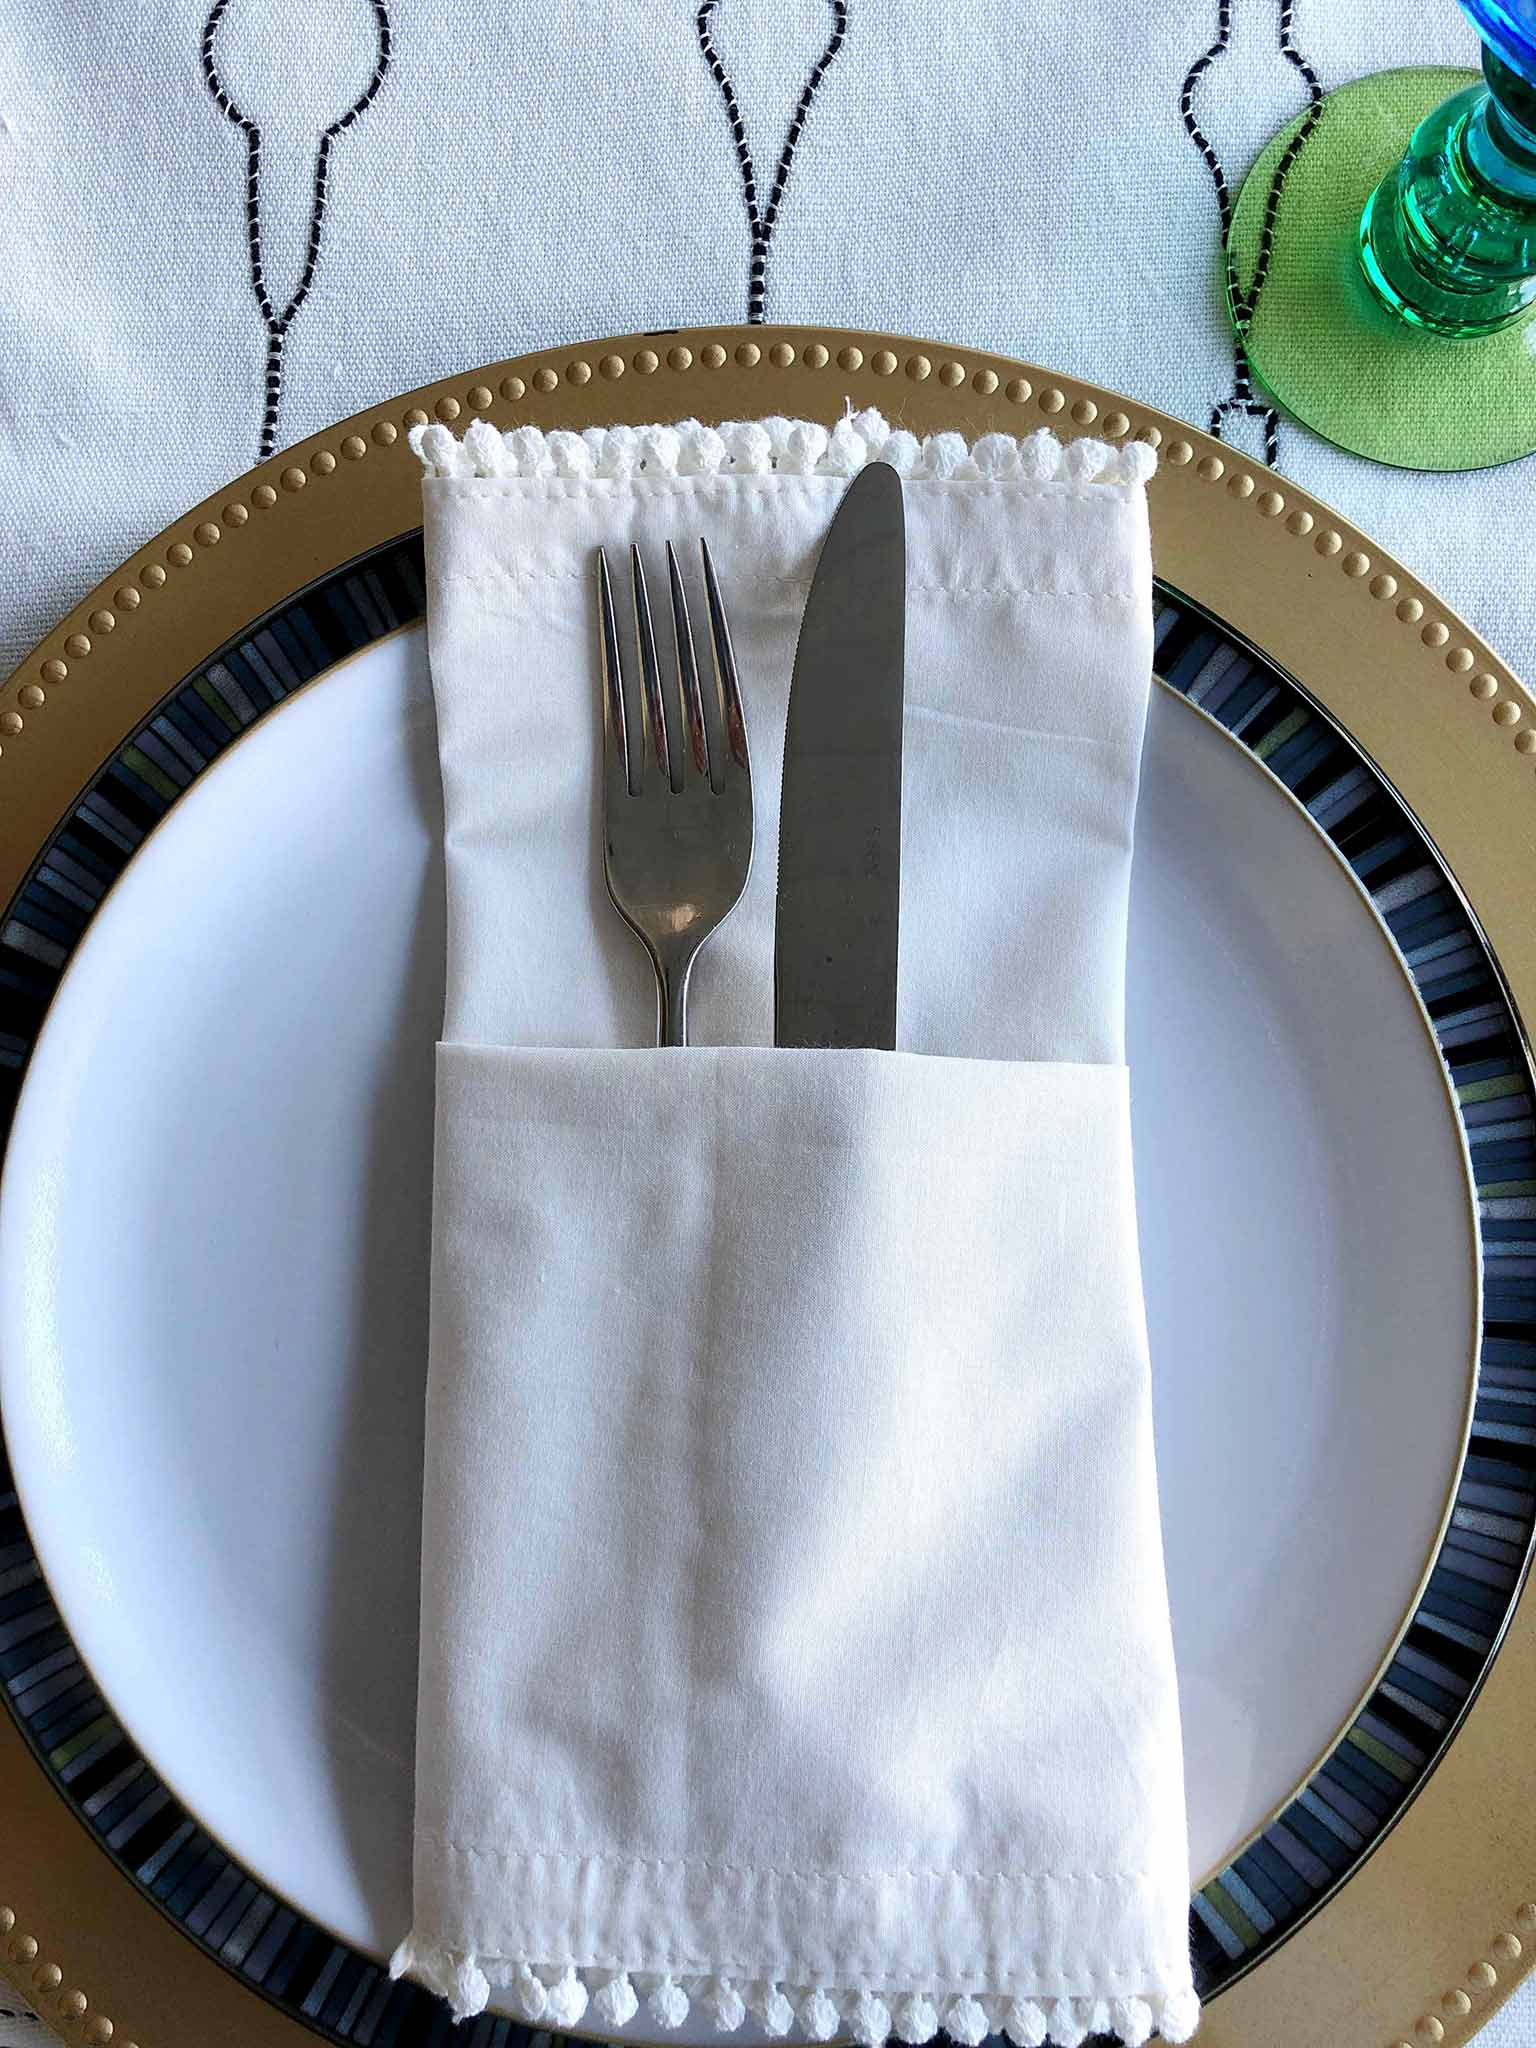 Pocket napkin fold | How to Create a Beautiful Tablescape on a Budget | That Homebird Life Blog #christmasdecor #tablescape